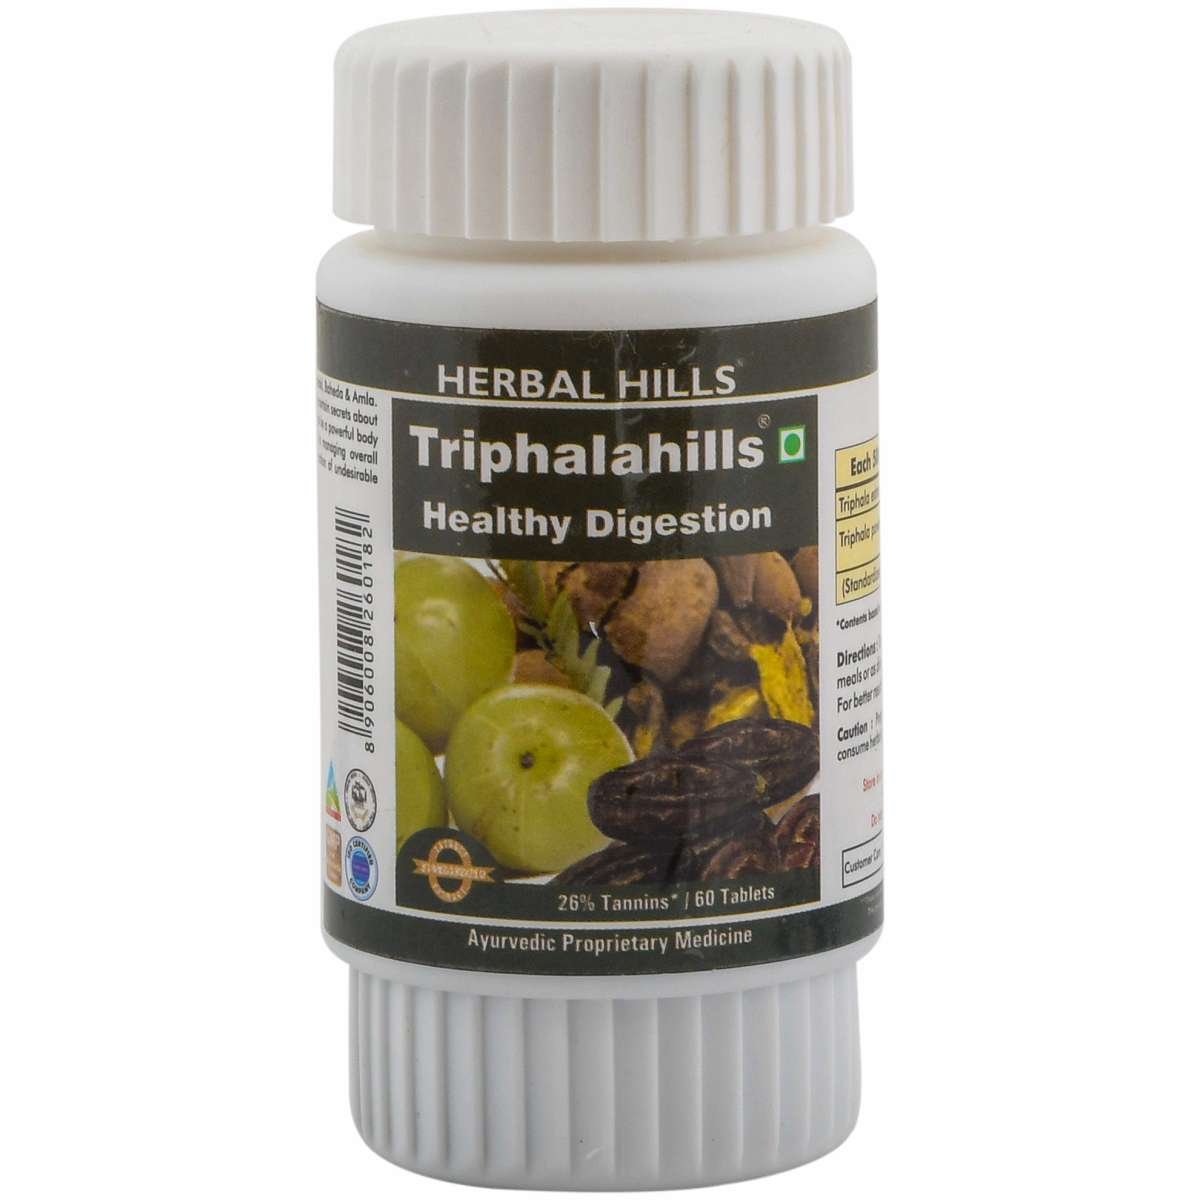 Herbal Hills Triphalahills 60 Tablets Triphala tablet - 500 mg Pure powder and extract blend in a Capsule